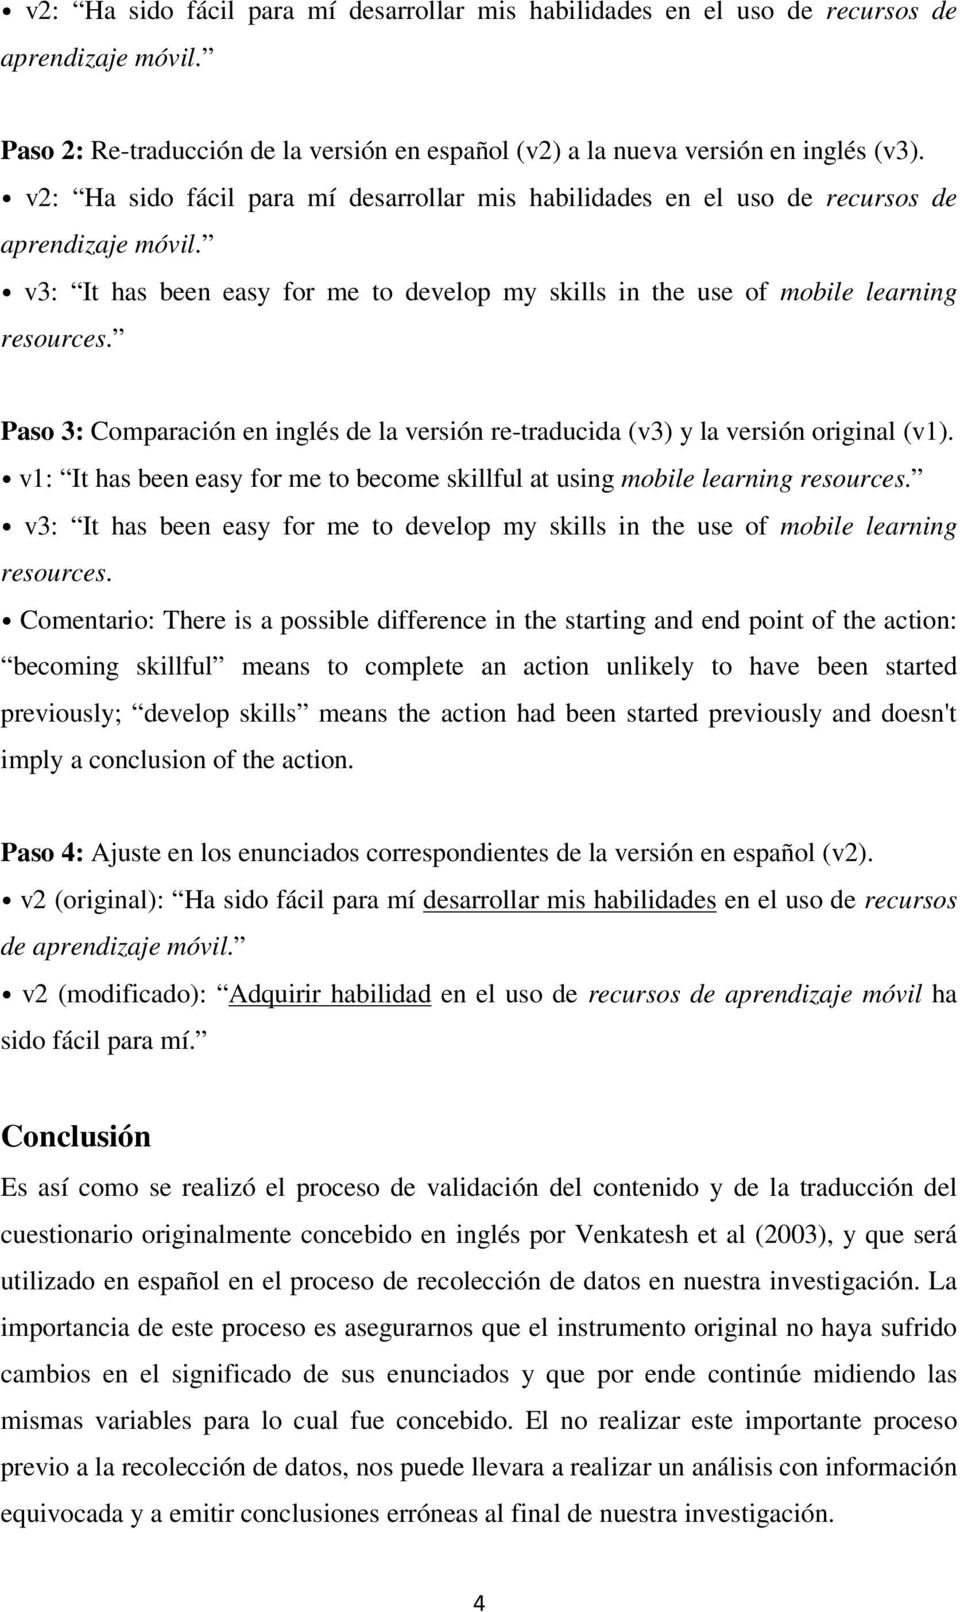 Paso 3: Comparación en inglés de la versión re-traducida (v3) y la versión original (v1). v1: It has been easy for me to become skillful at using mobile learning resources.